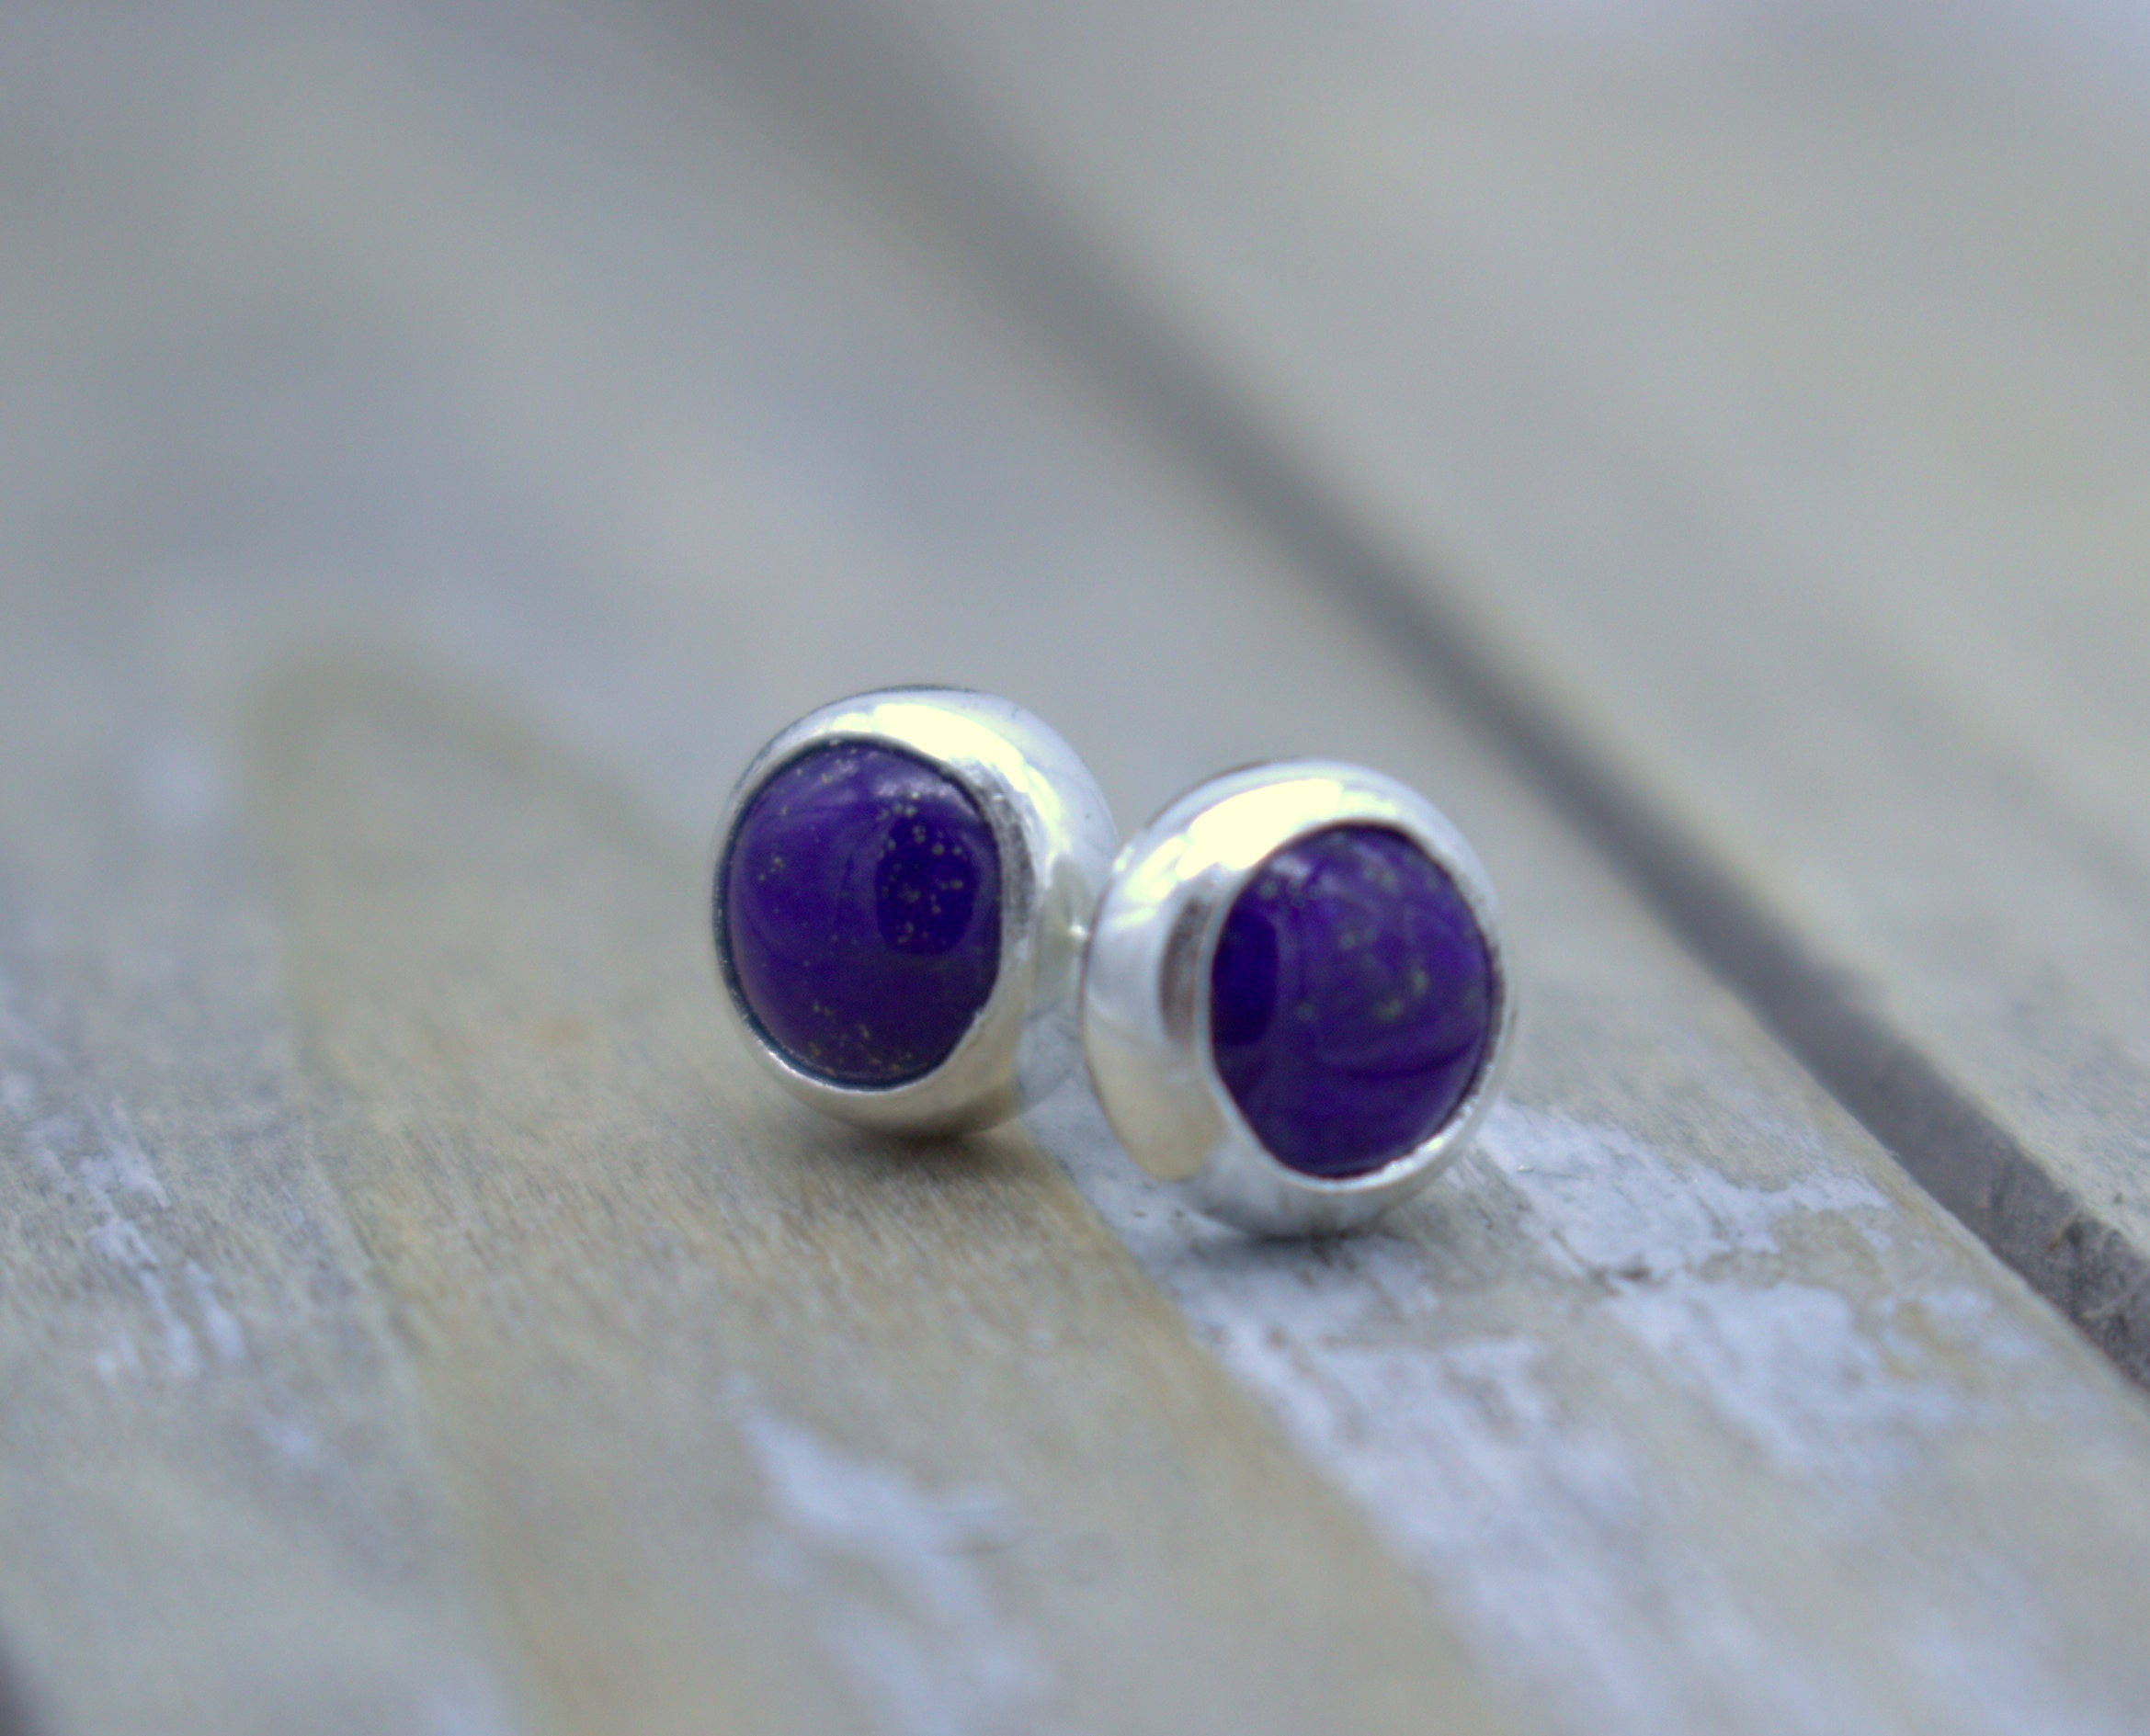 ON SALE - Blue Lapis Stud Earrings - Sterling Silver Earrings - Lapis Jewelry - Gift for her - Jewelry sale - Blue - Petite